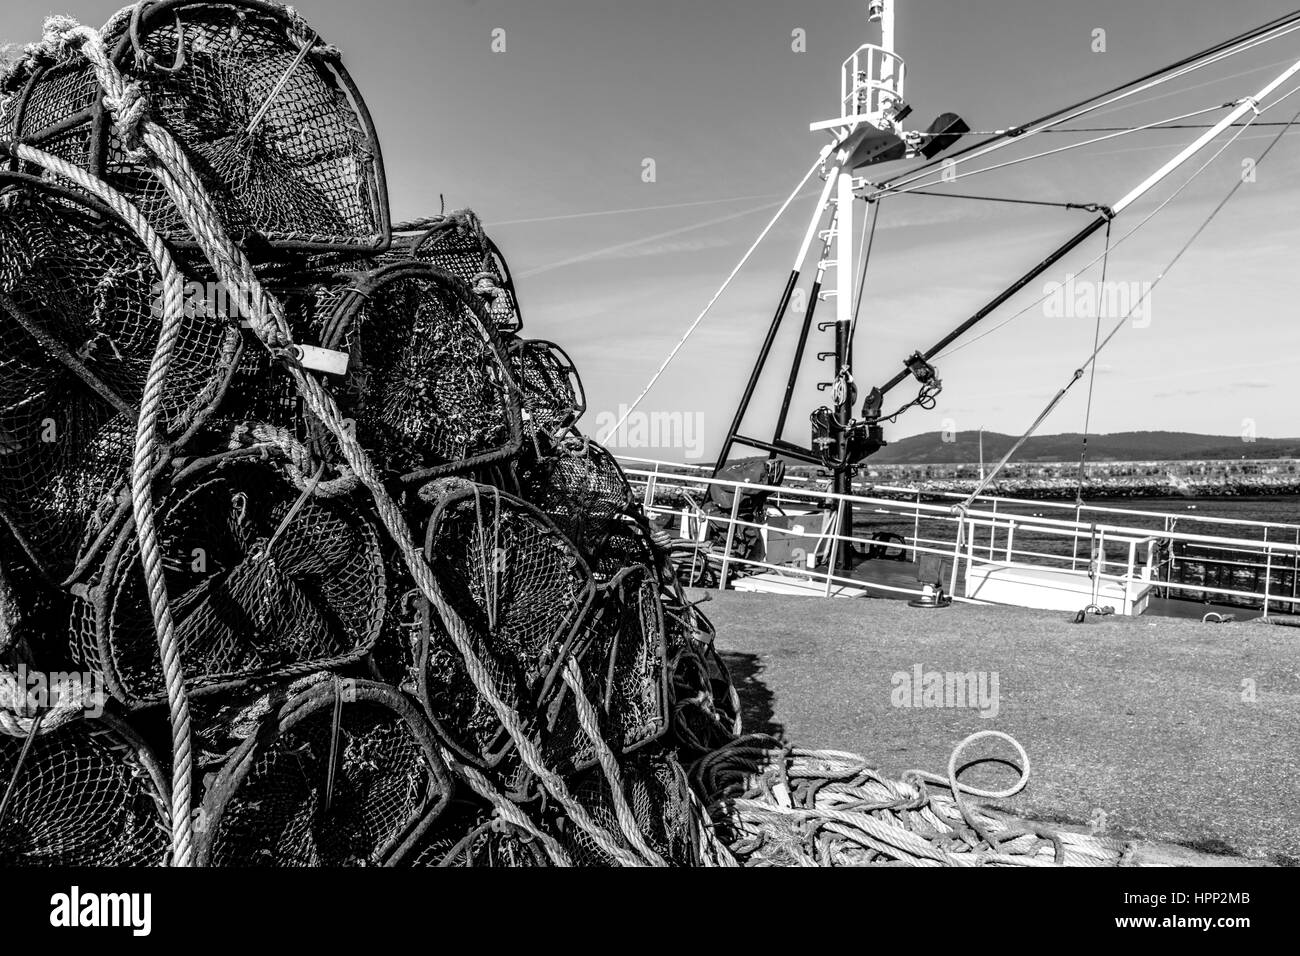 Pile of Fishing Traps Against Moored Fishing Ship in Harbour - Stock Image